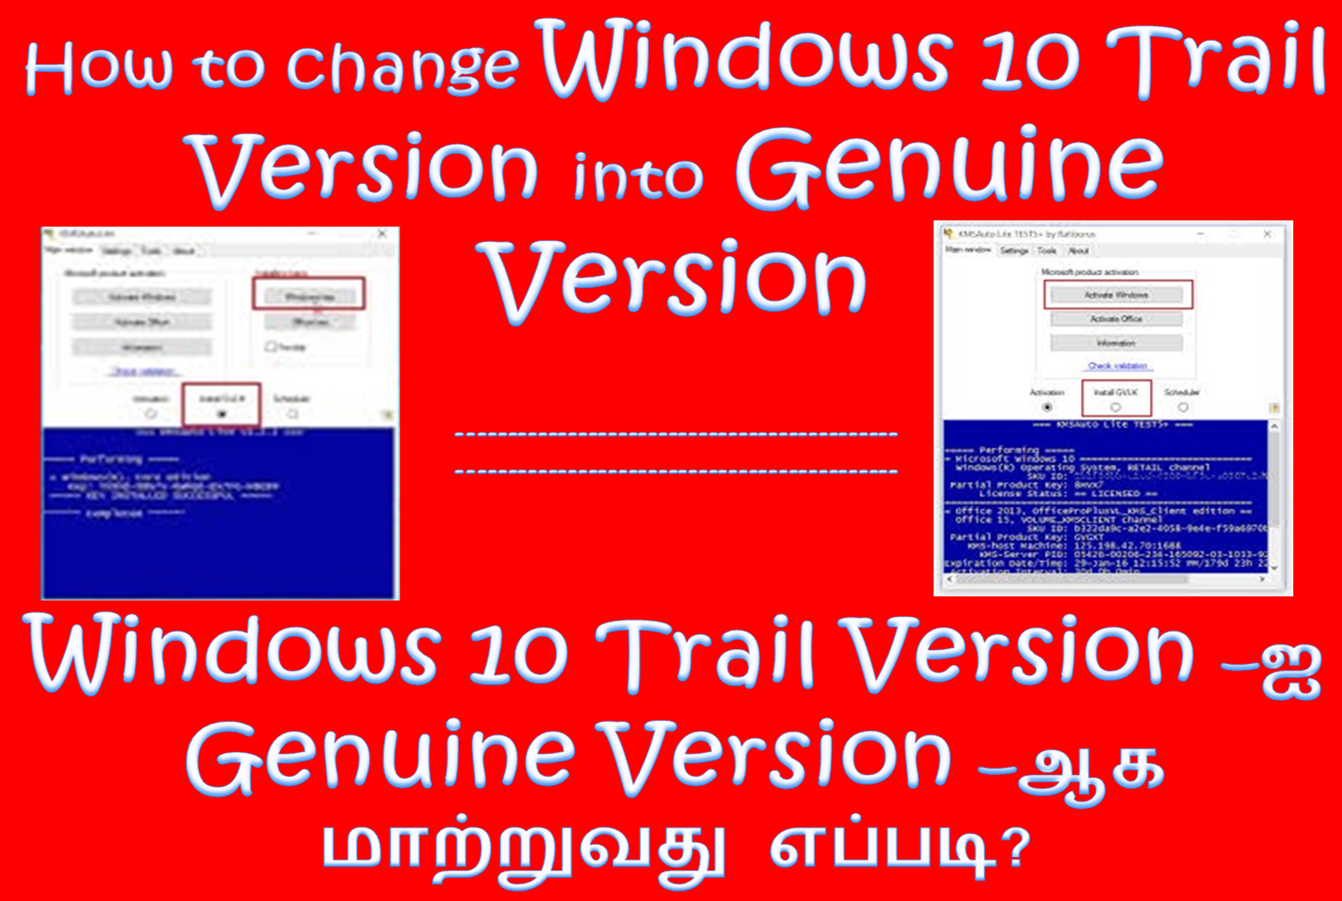 A2z solutions english how to activate windows 10 without here we can see how to convert the windows 10 trail version into a genuine version ccuart Choice Image